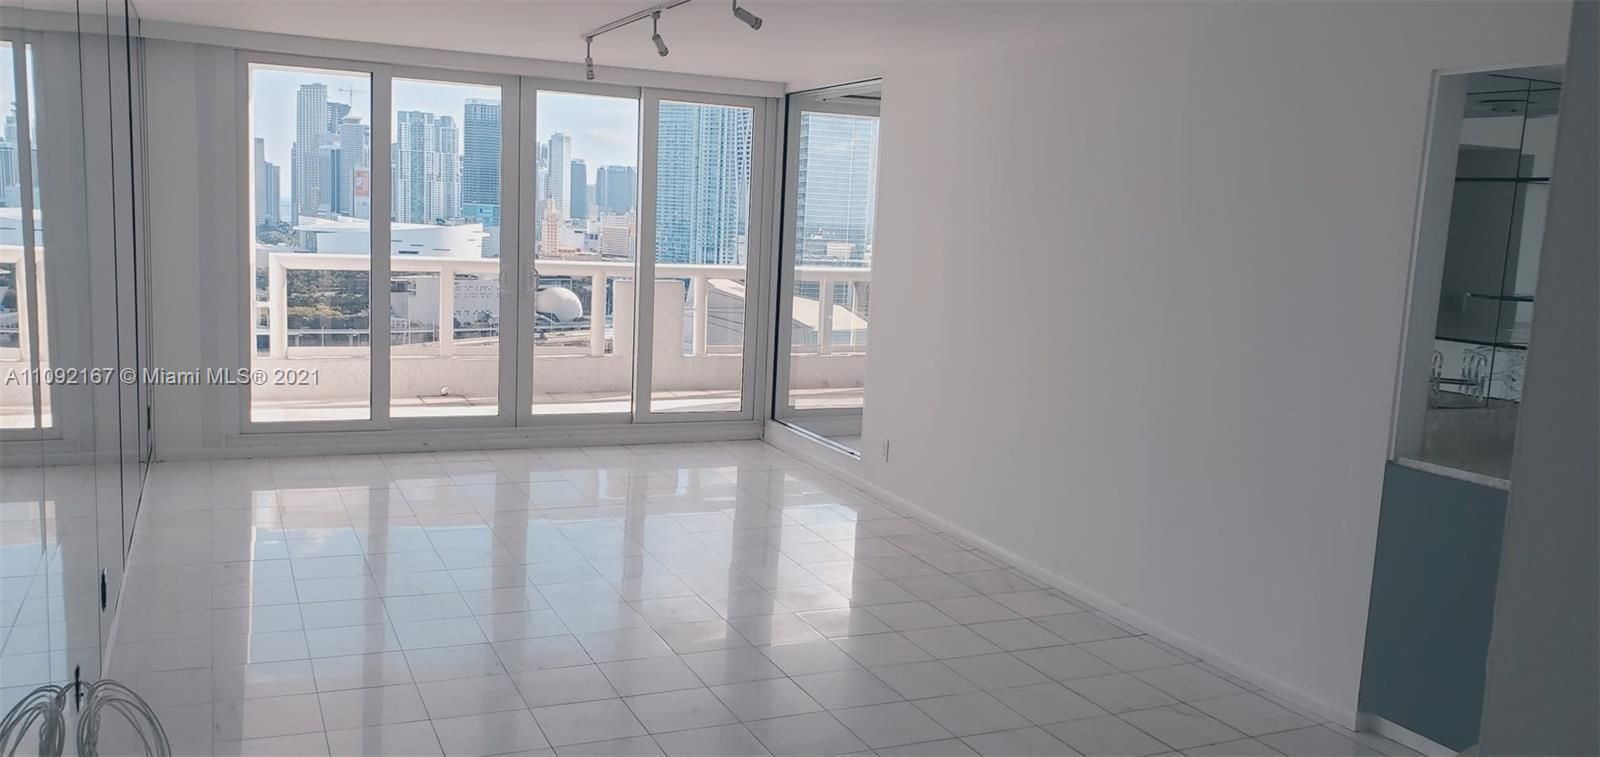 Large 1 Bedroom / 1.5 Bathrooms (985 Sq. Ft). Beautiful views from Biscayne Bay and Downtown Miami f